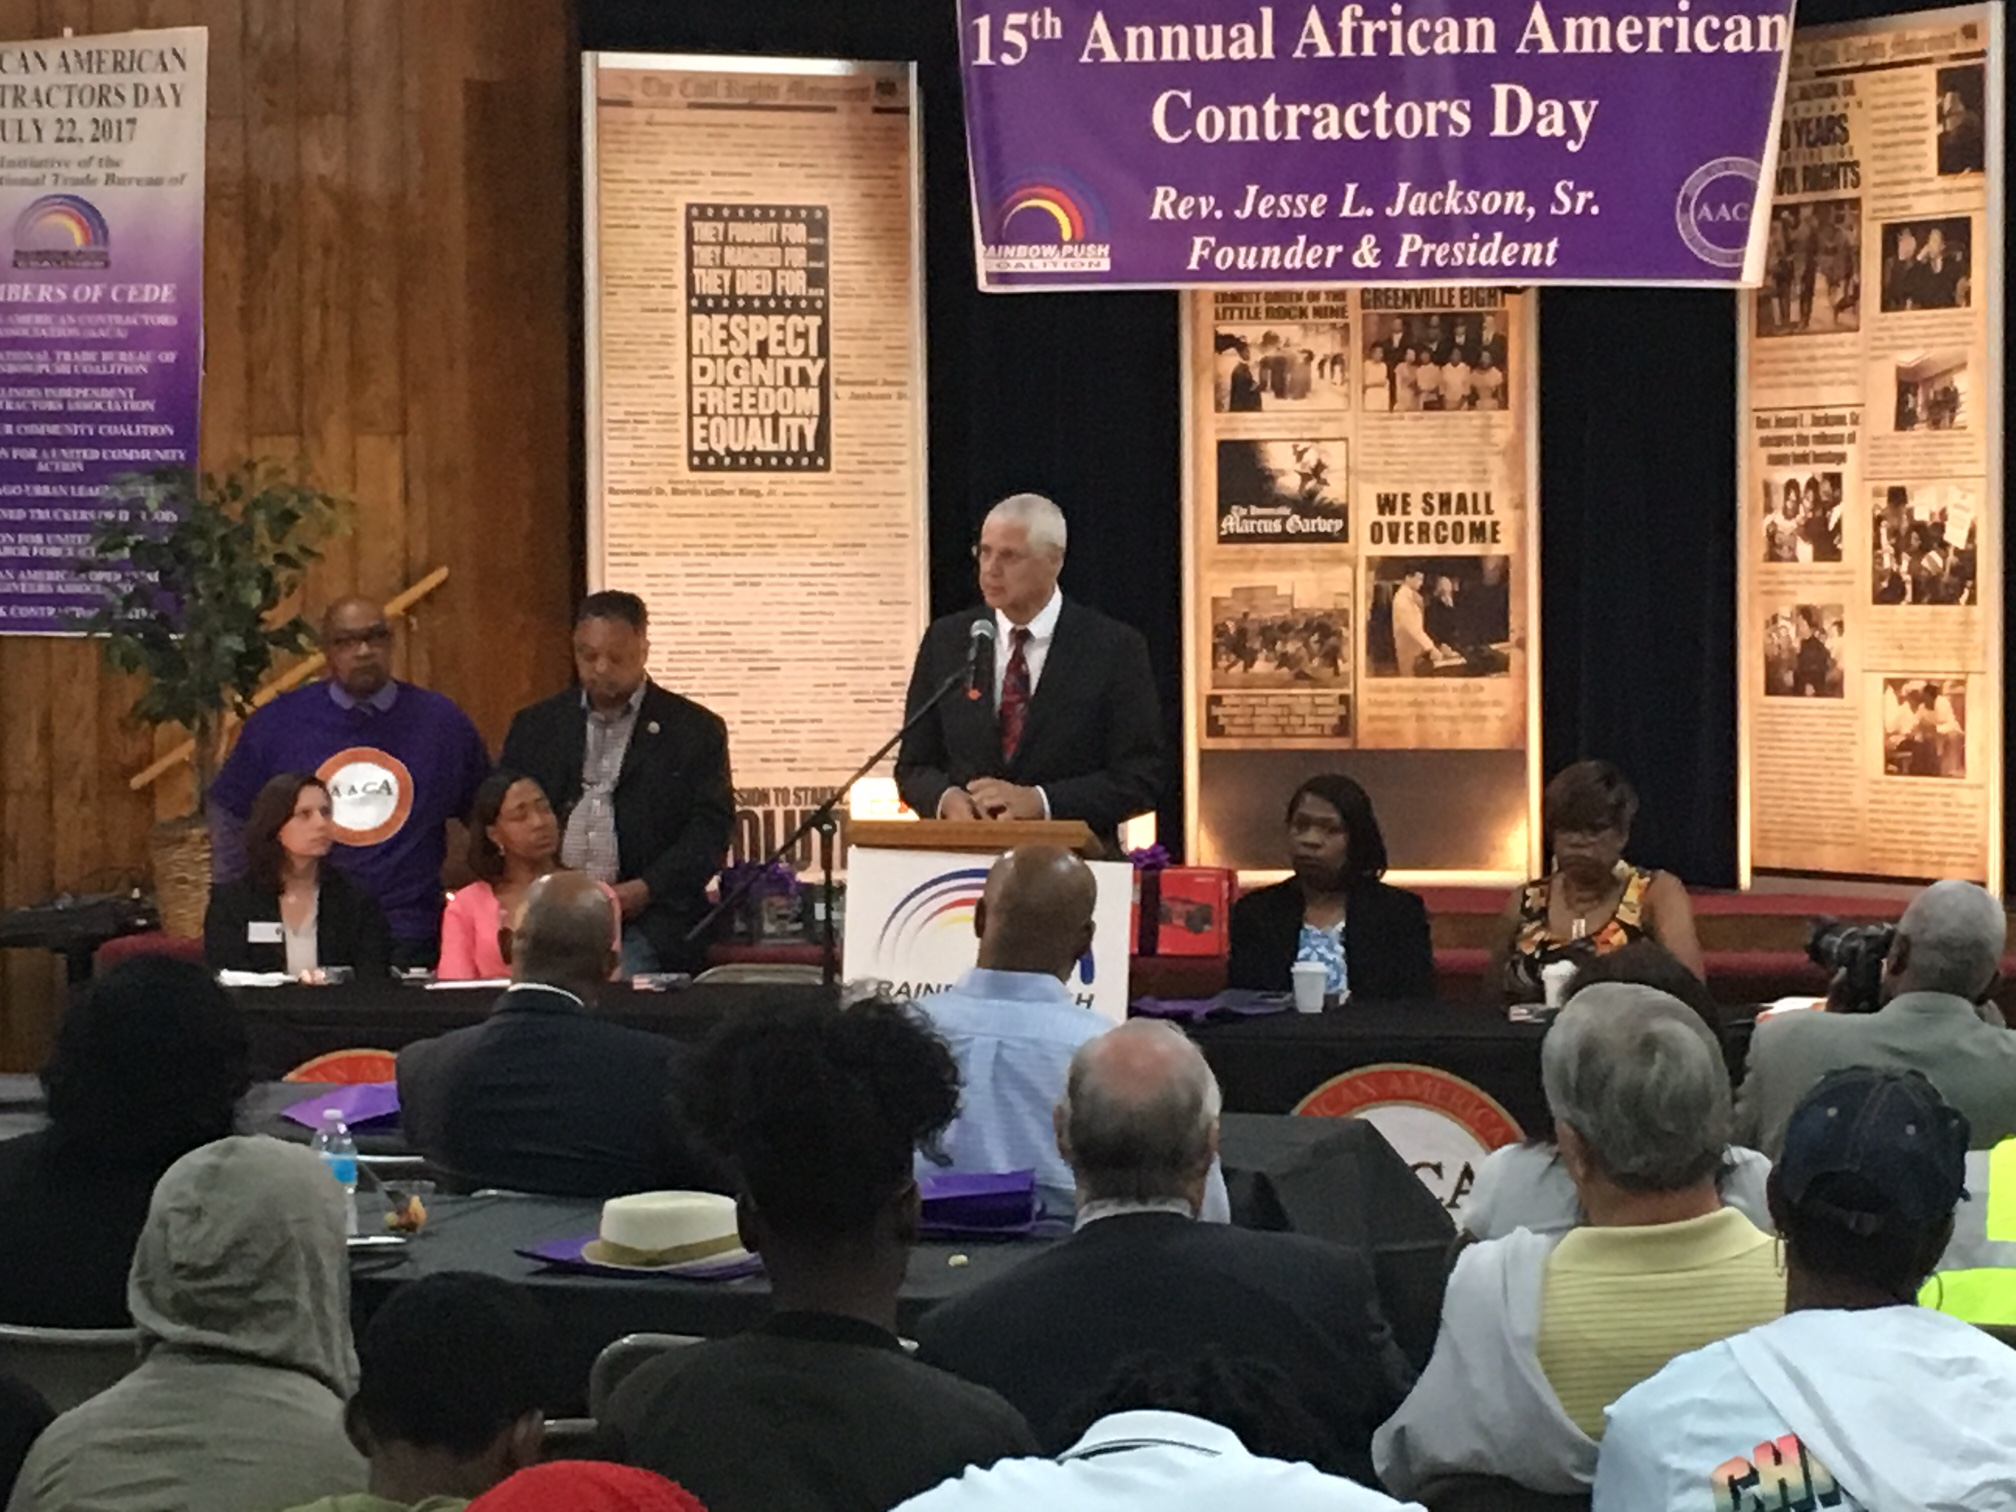 15th Annual African American Contractors Day